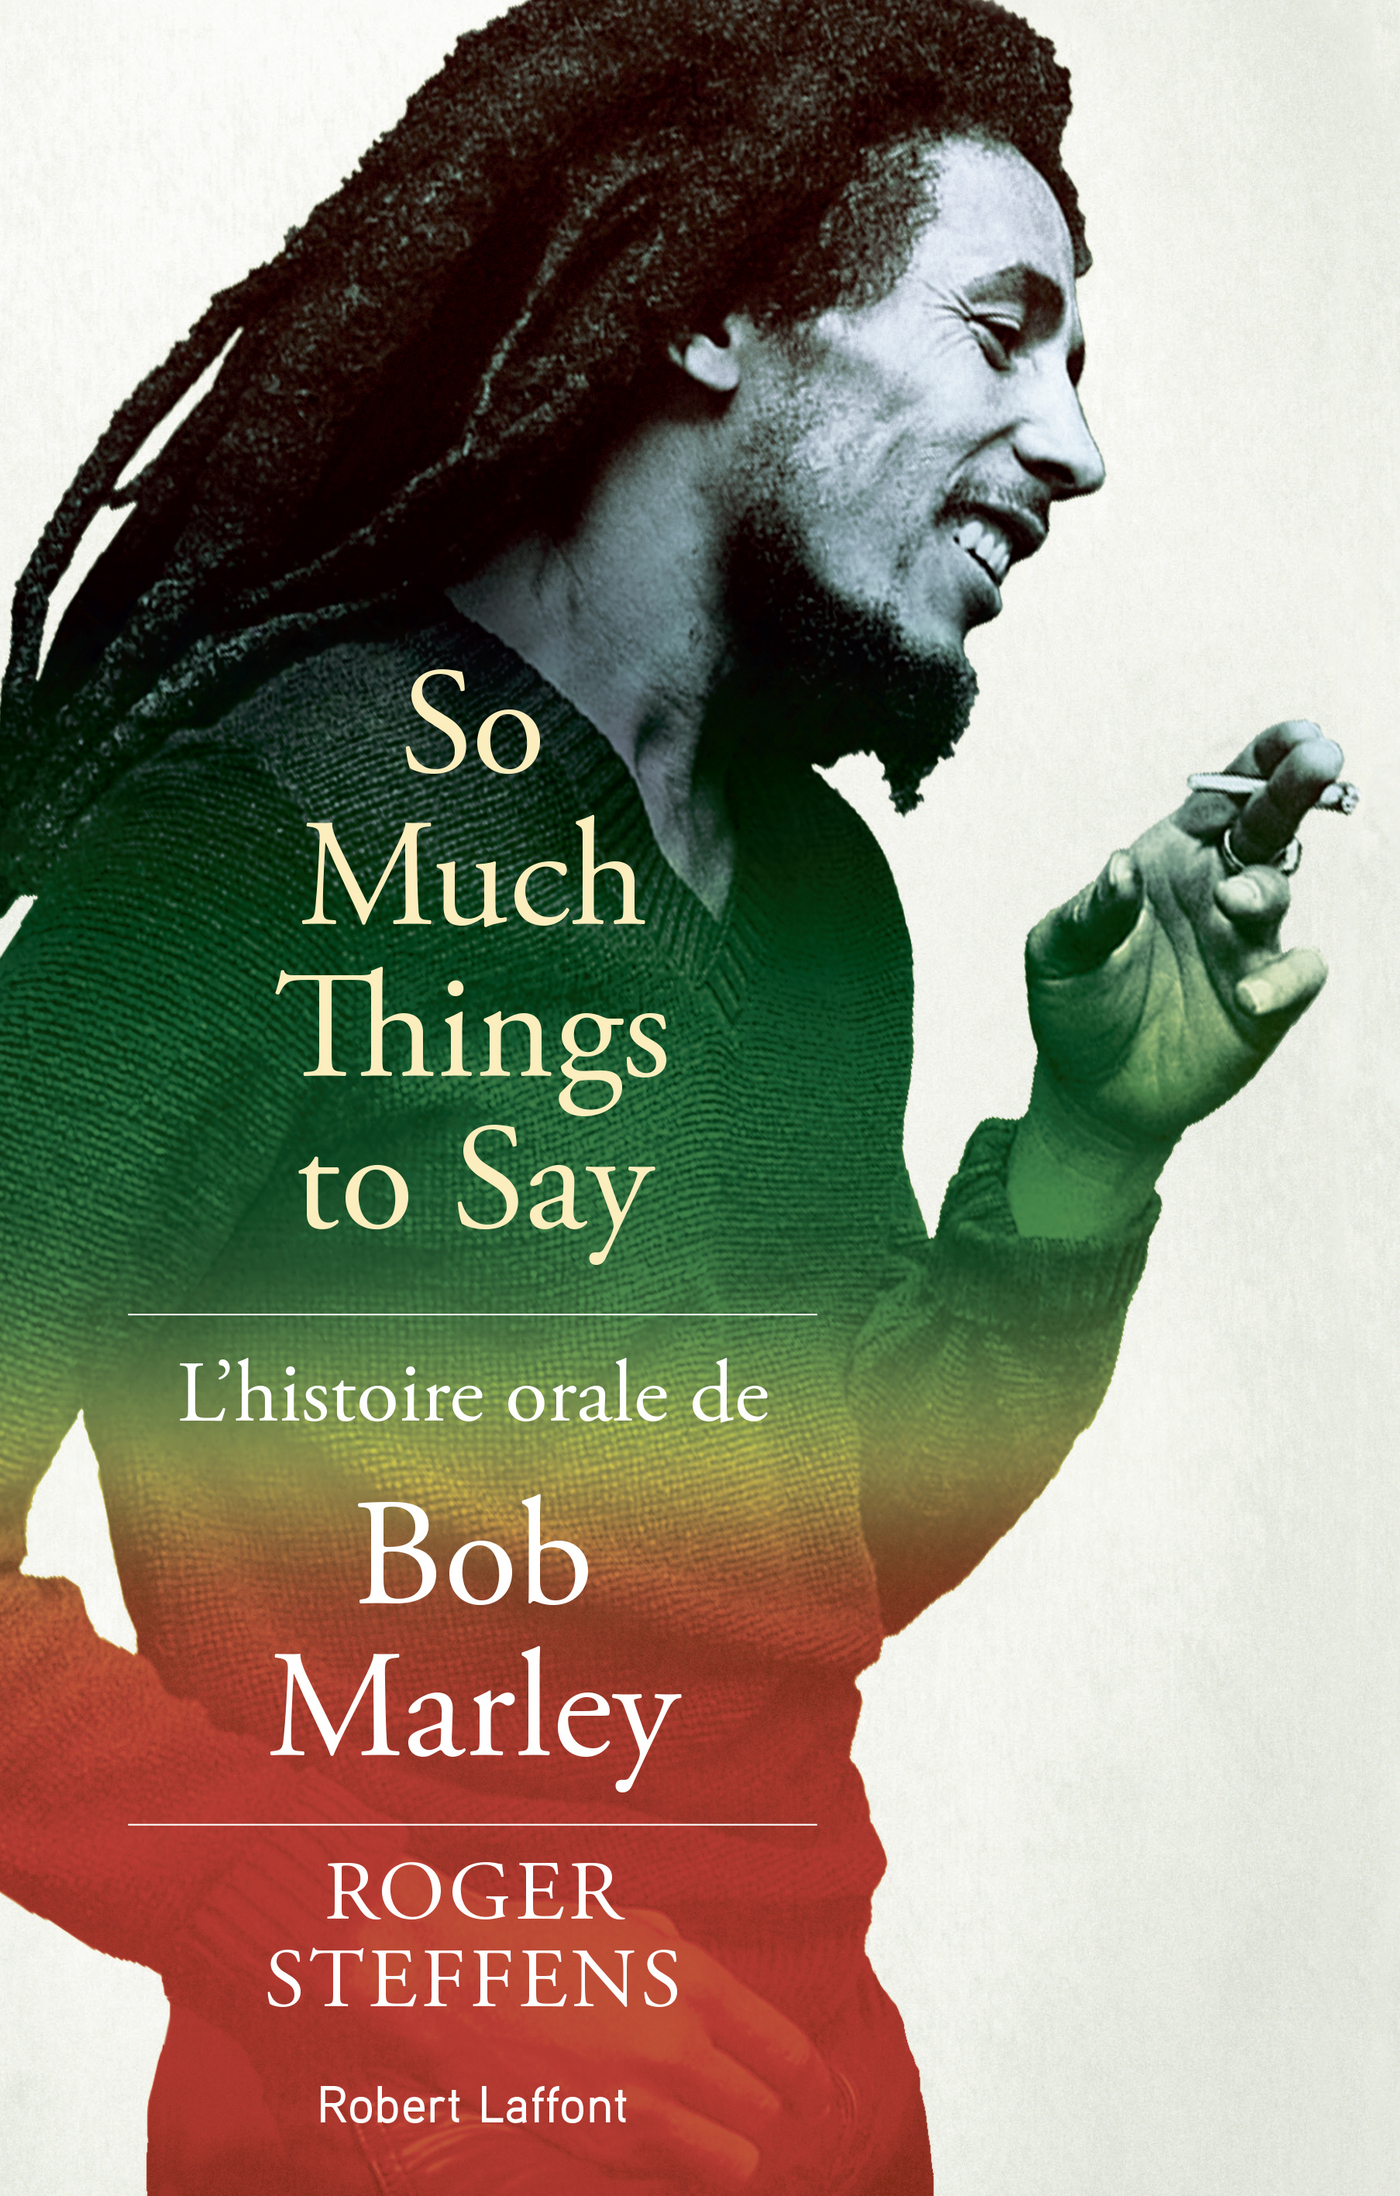 So much things to say: L'histoire orale de Bob Marley